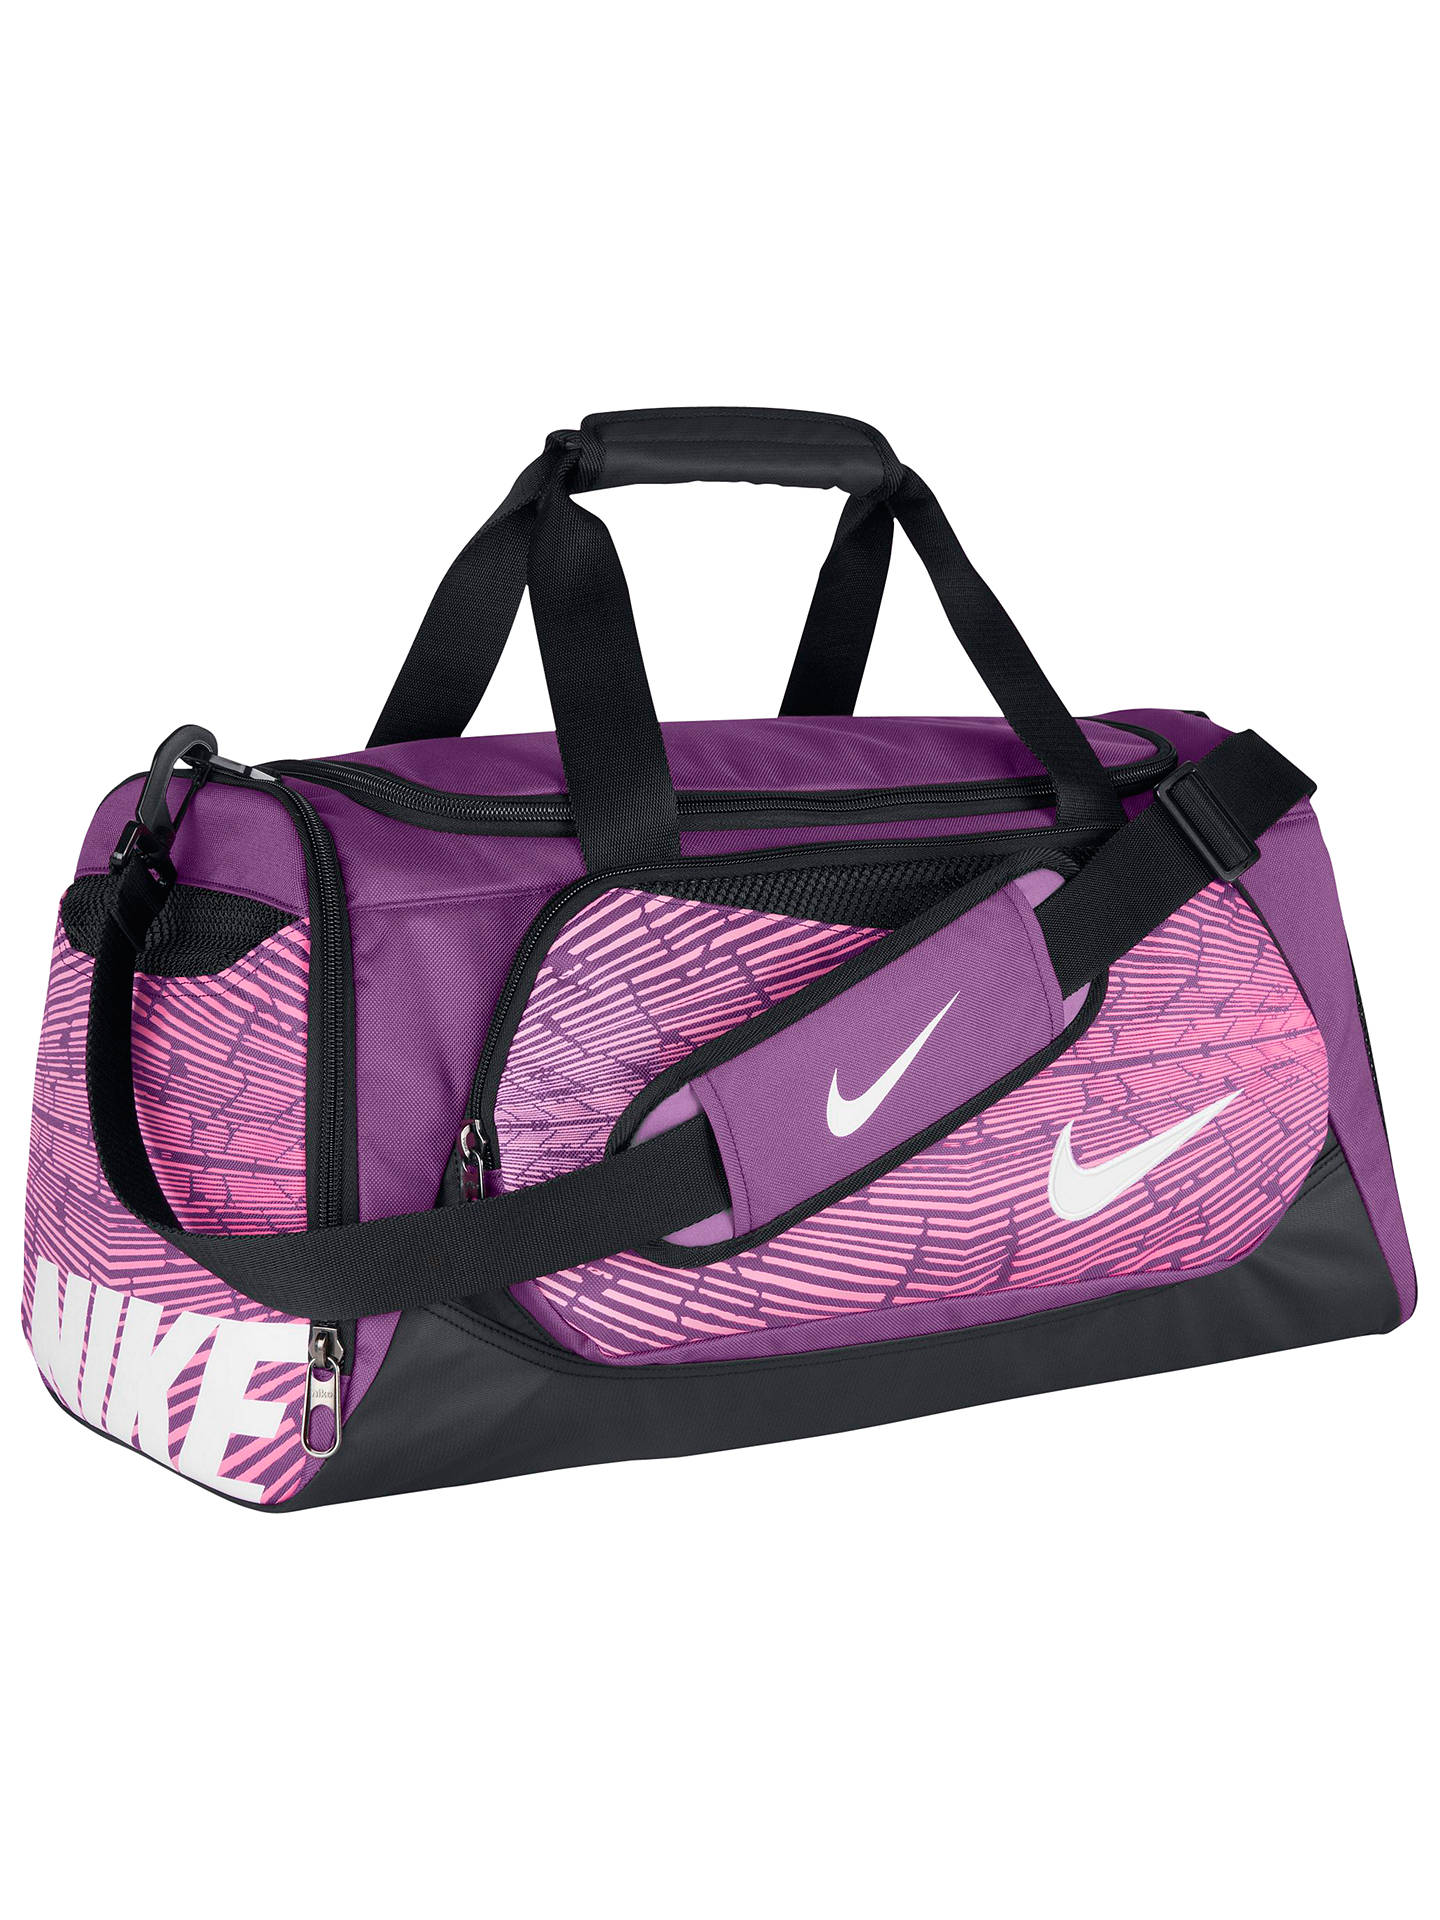 Nike Ya Tt Small Kids Duffel Bag Purple At John Lewis